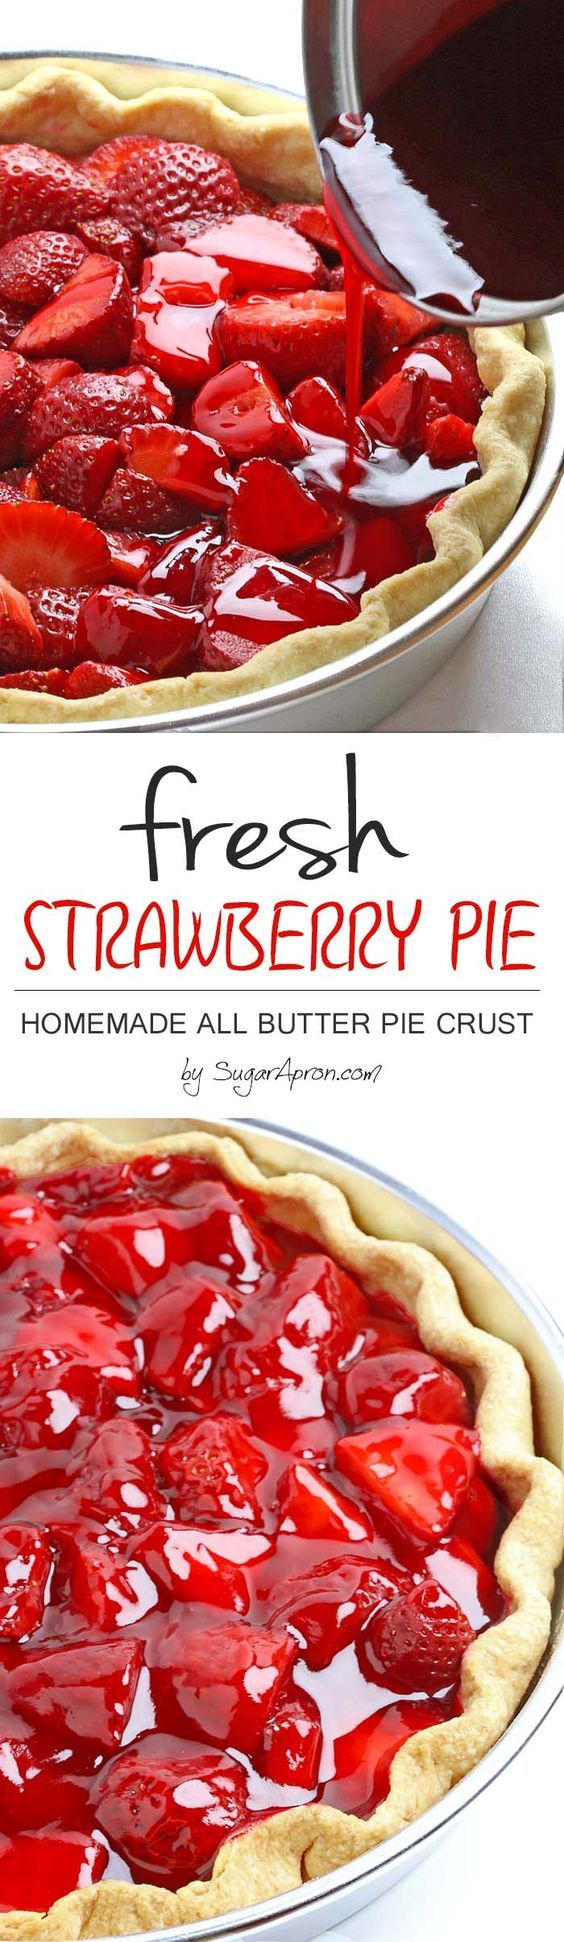 This easy fresh strawberry pie with Homemade All Butter Crust is bursting with fresh strawberries. It's a perfect spring treat!: